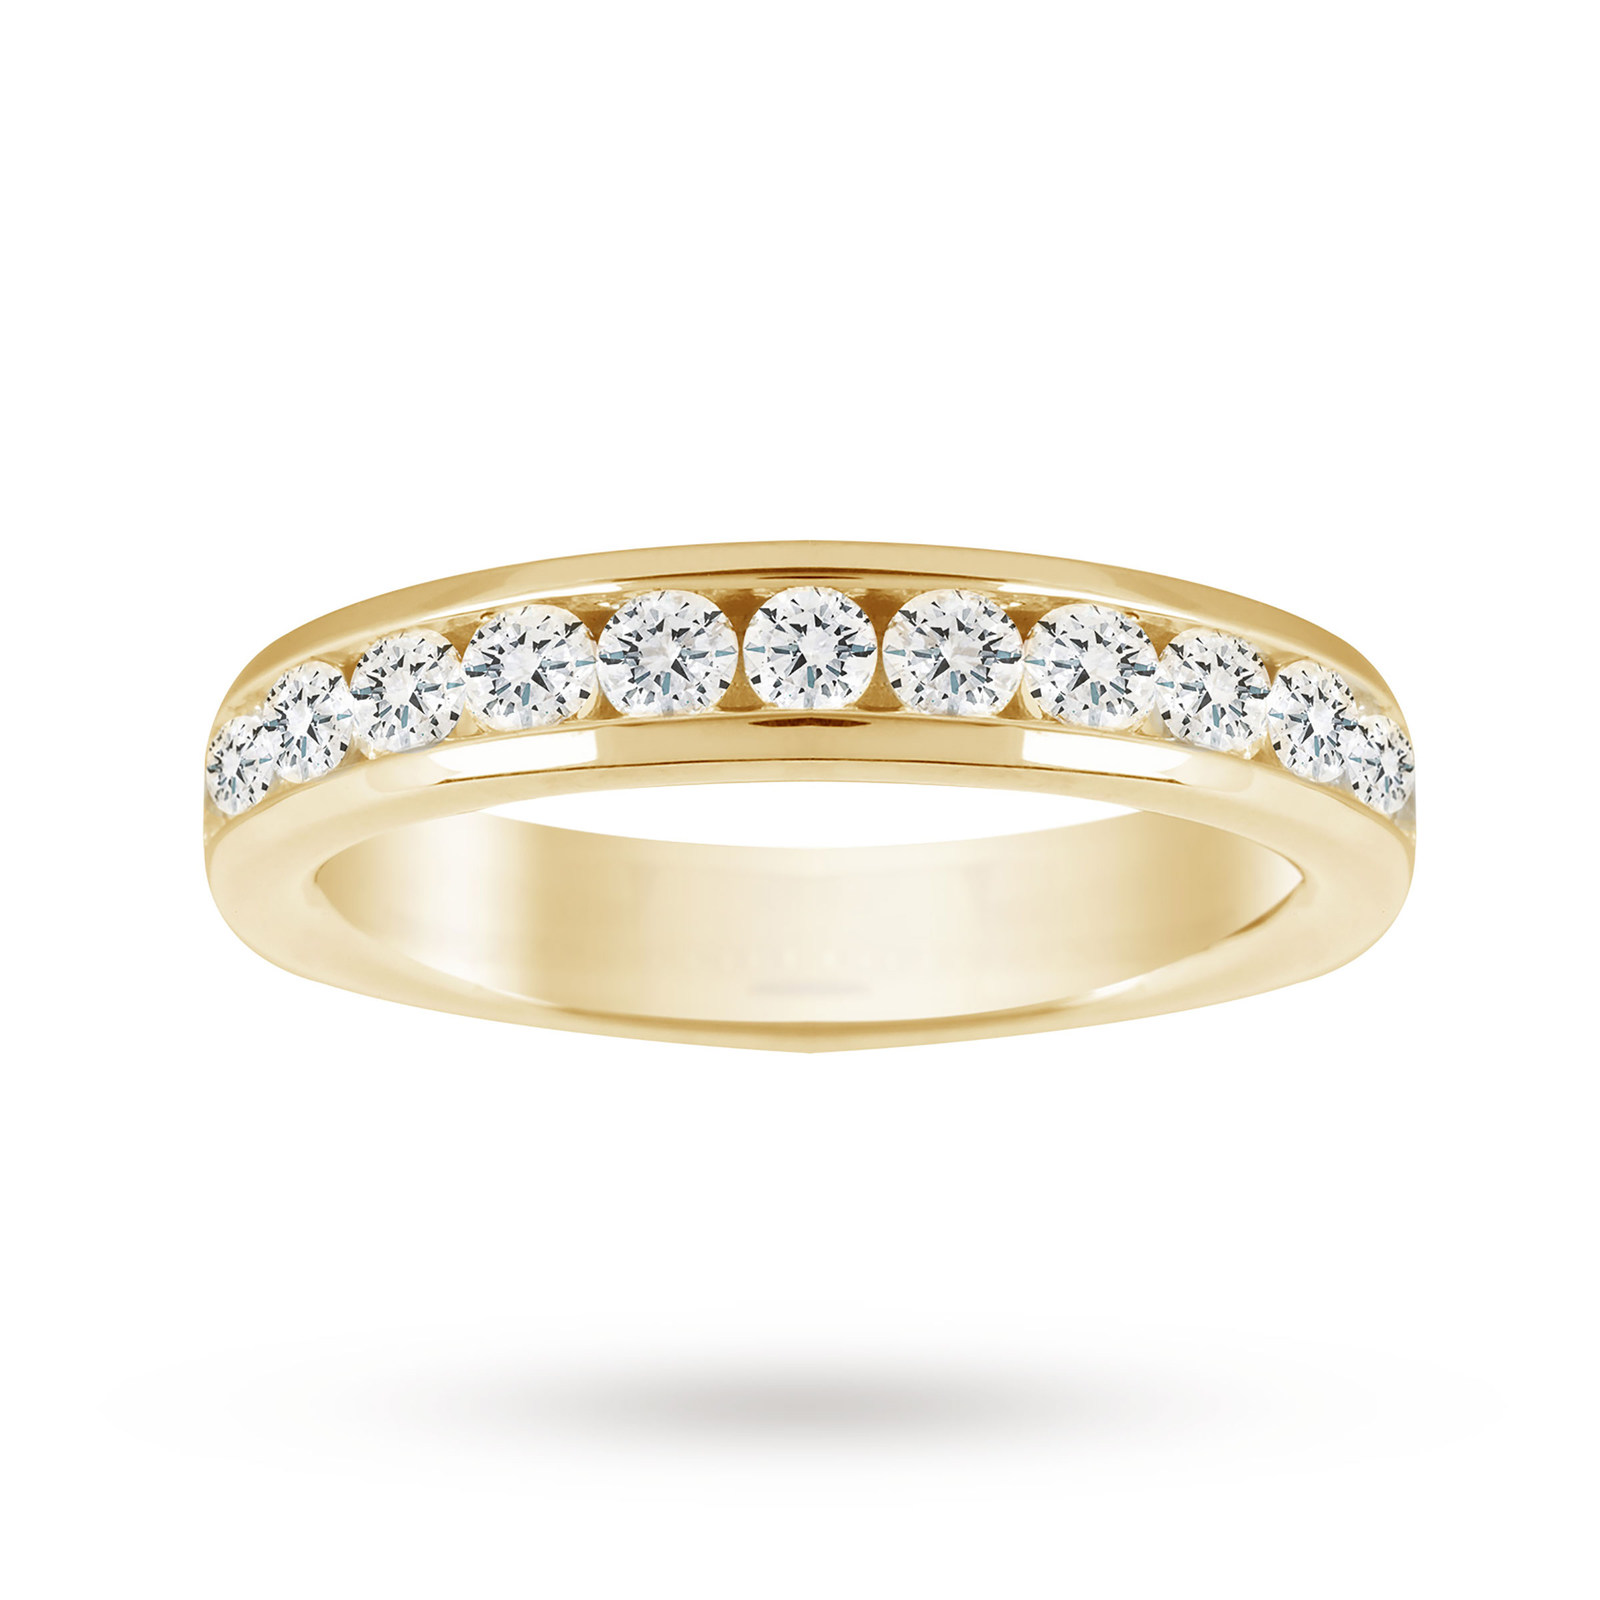 18ct Yellow Gold 1.00cttw Diamond Half Eternity Ring - Ring Size J